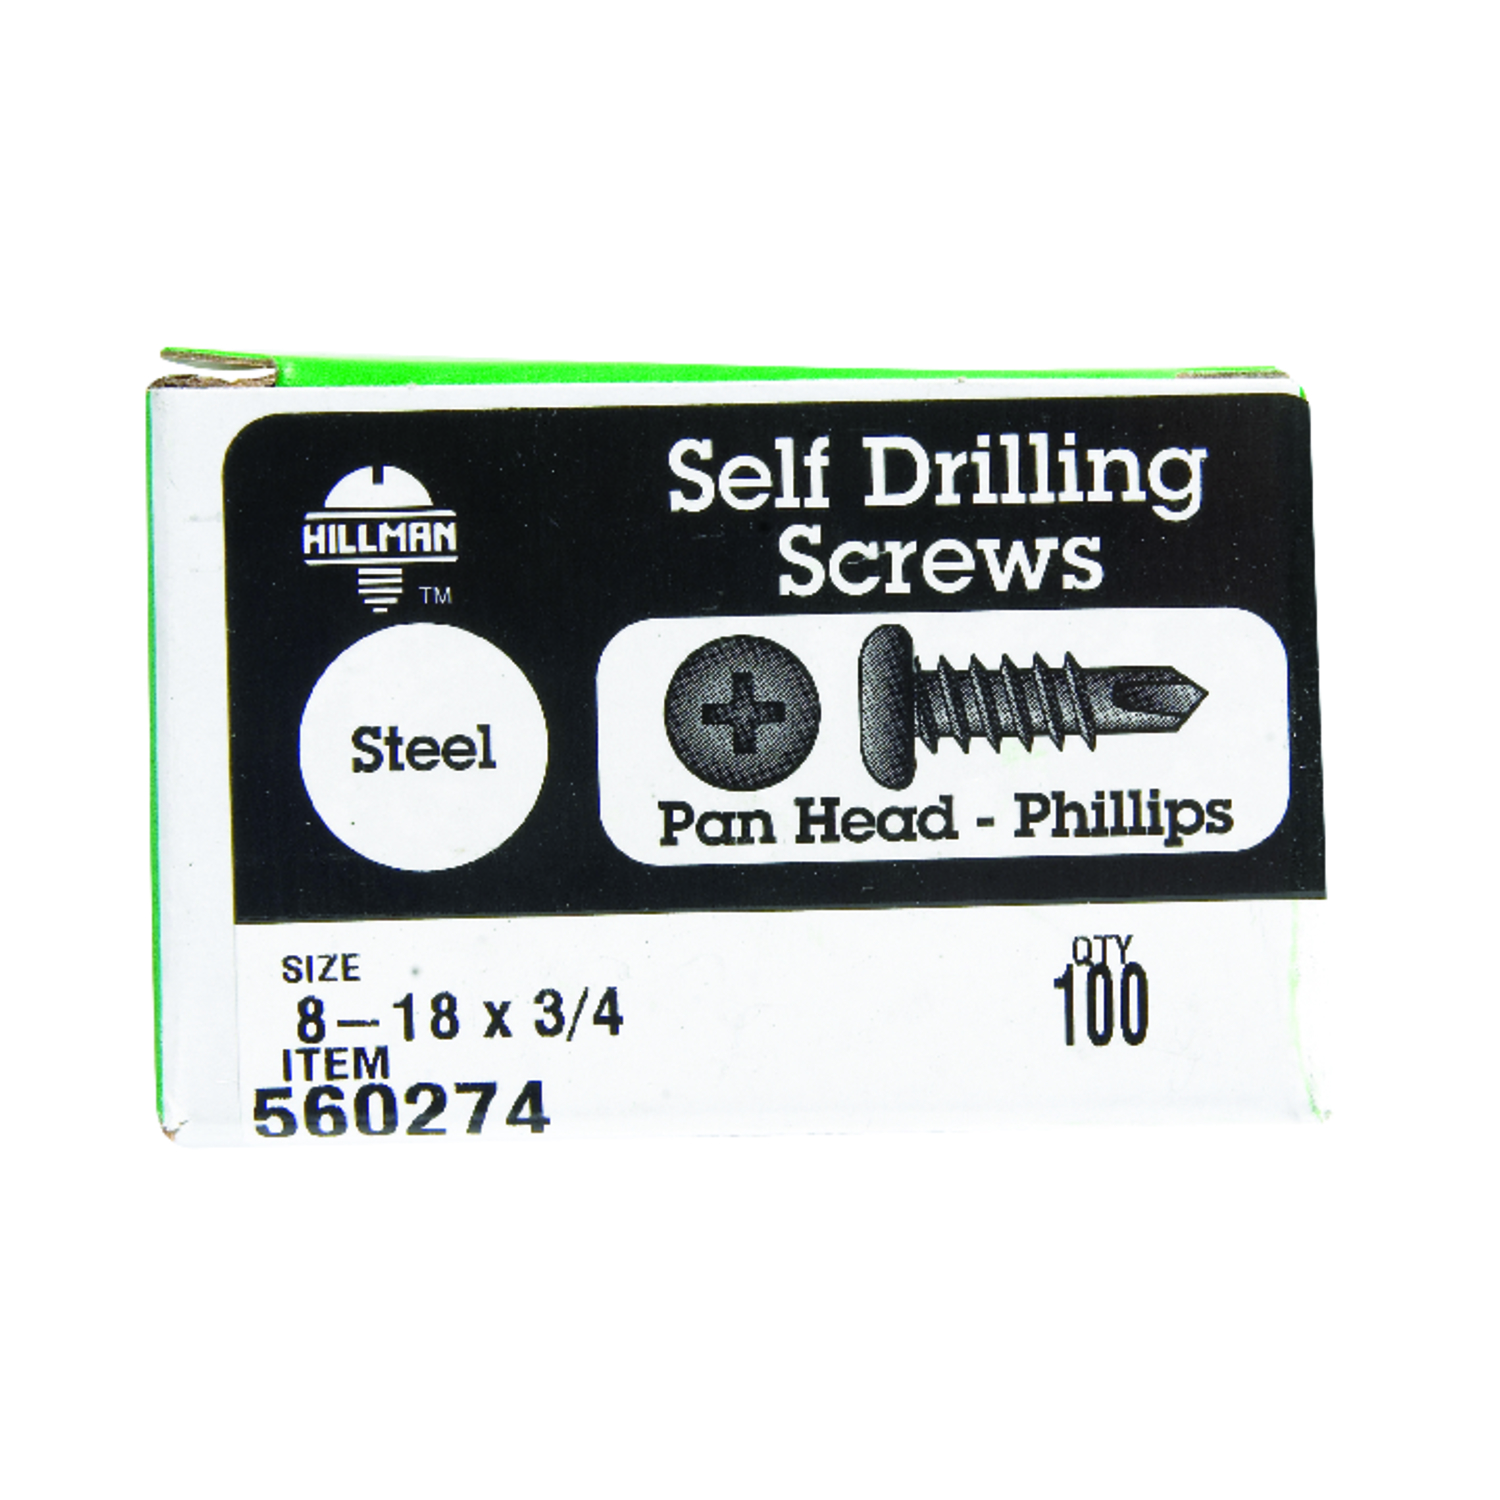 HILLMAN  8-18   x 3/4 in. L Phillips  Pan Head Steel  Self- Drilling Screws  100 per box Zinc-Plated